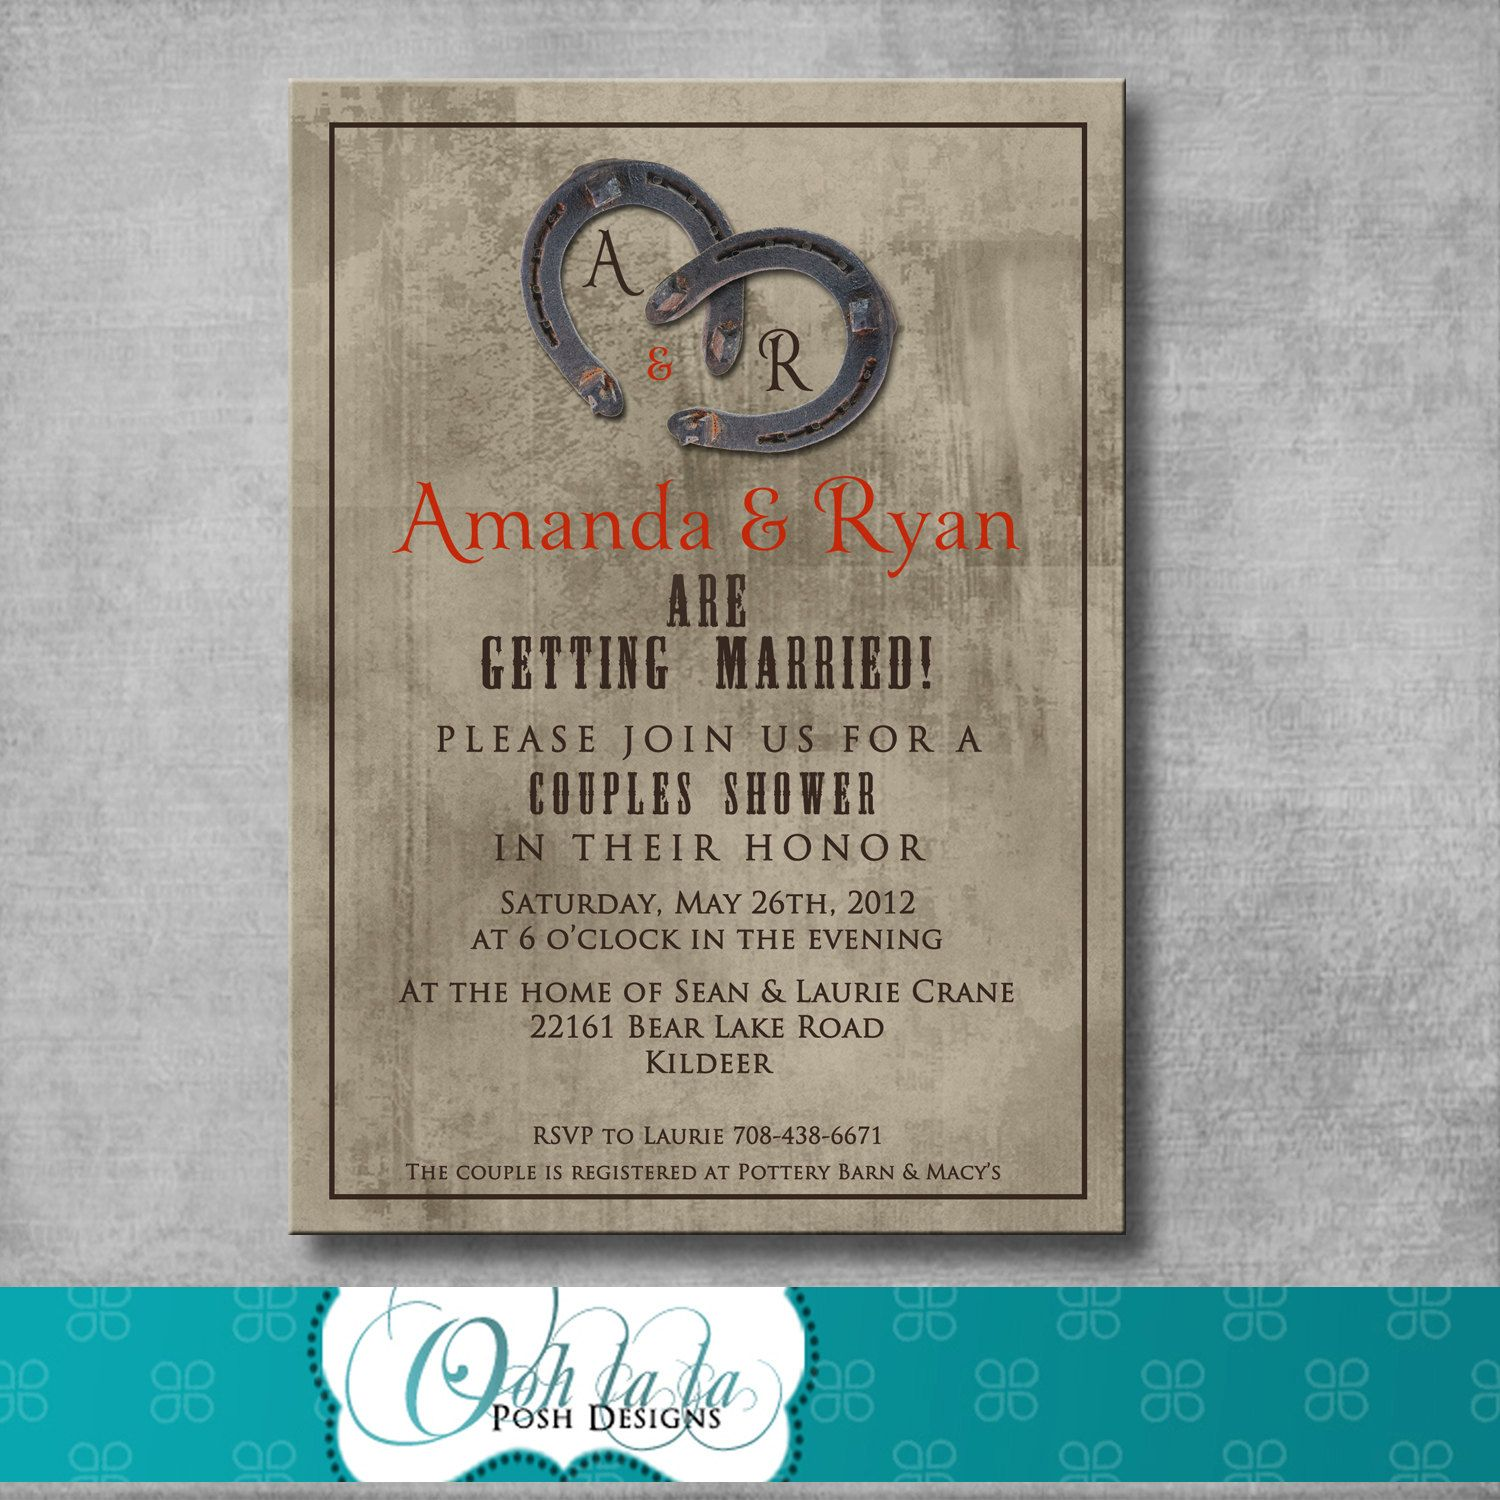 wedding party invitation message%0A Rustic Charm Couples Shower Invitation DIY by OohlalaPoshDesigns